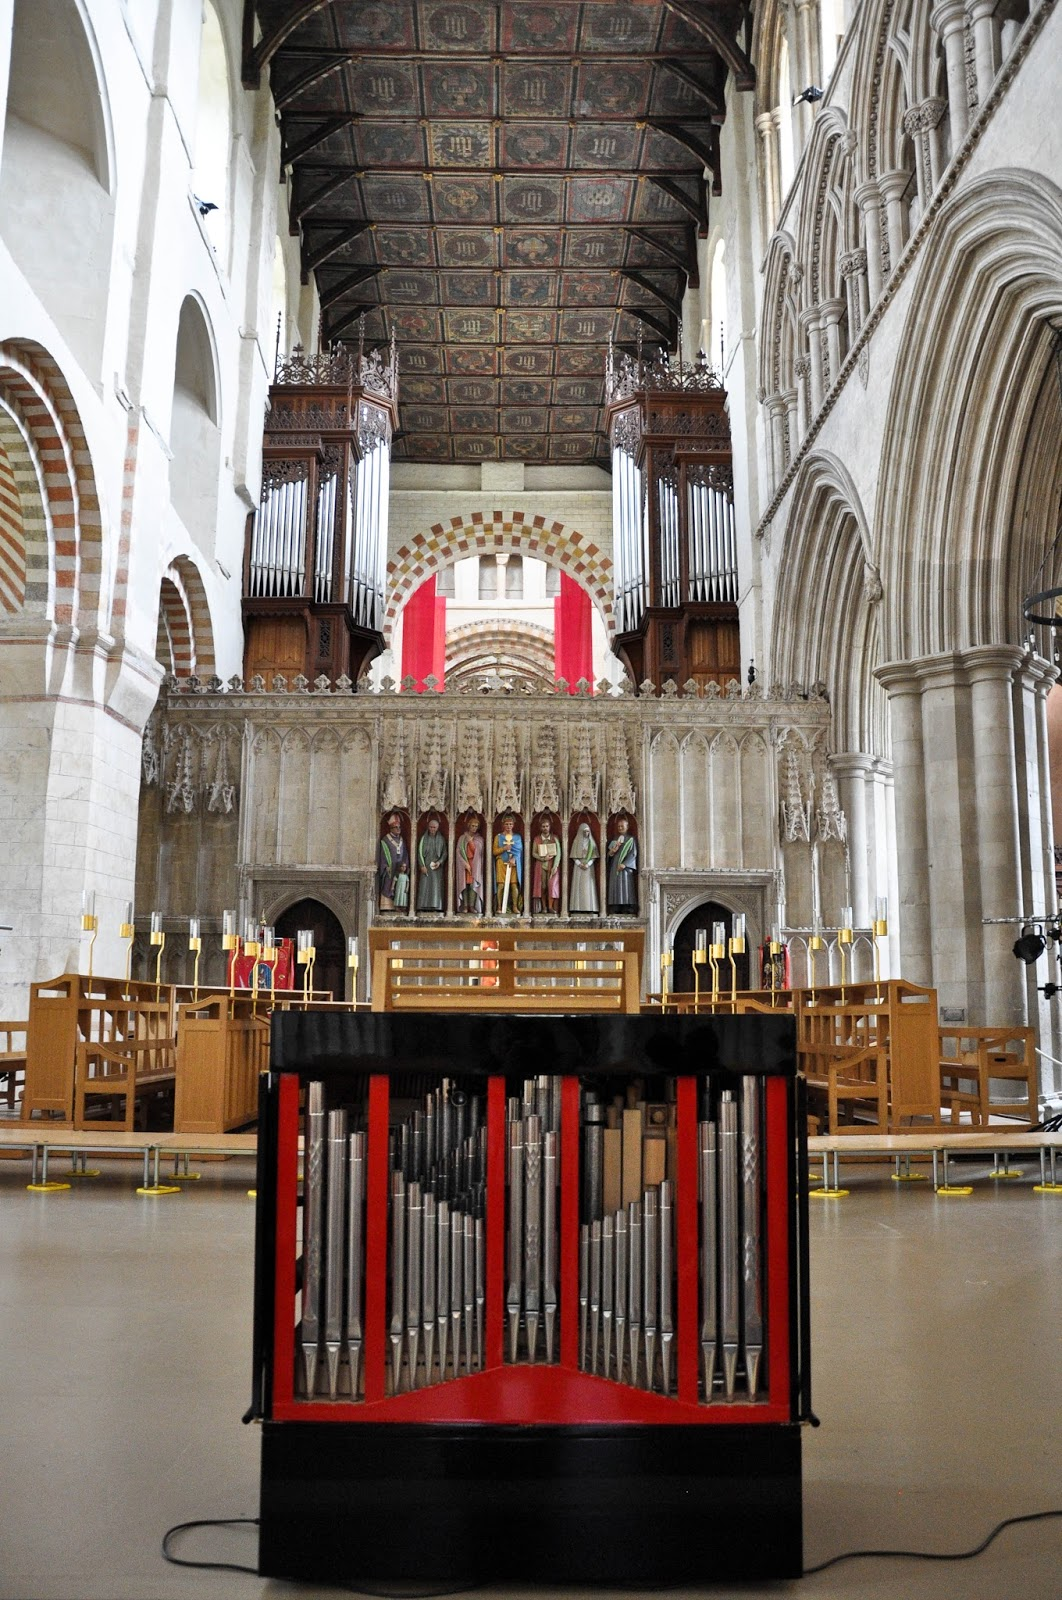 The altar, St. Albans Cathedral, St. Albans, Herts, England